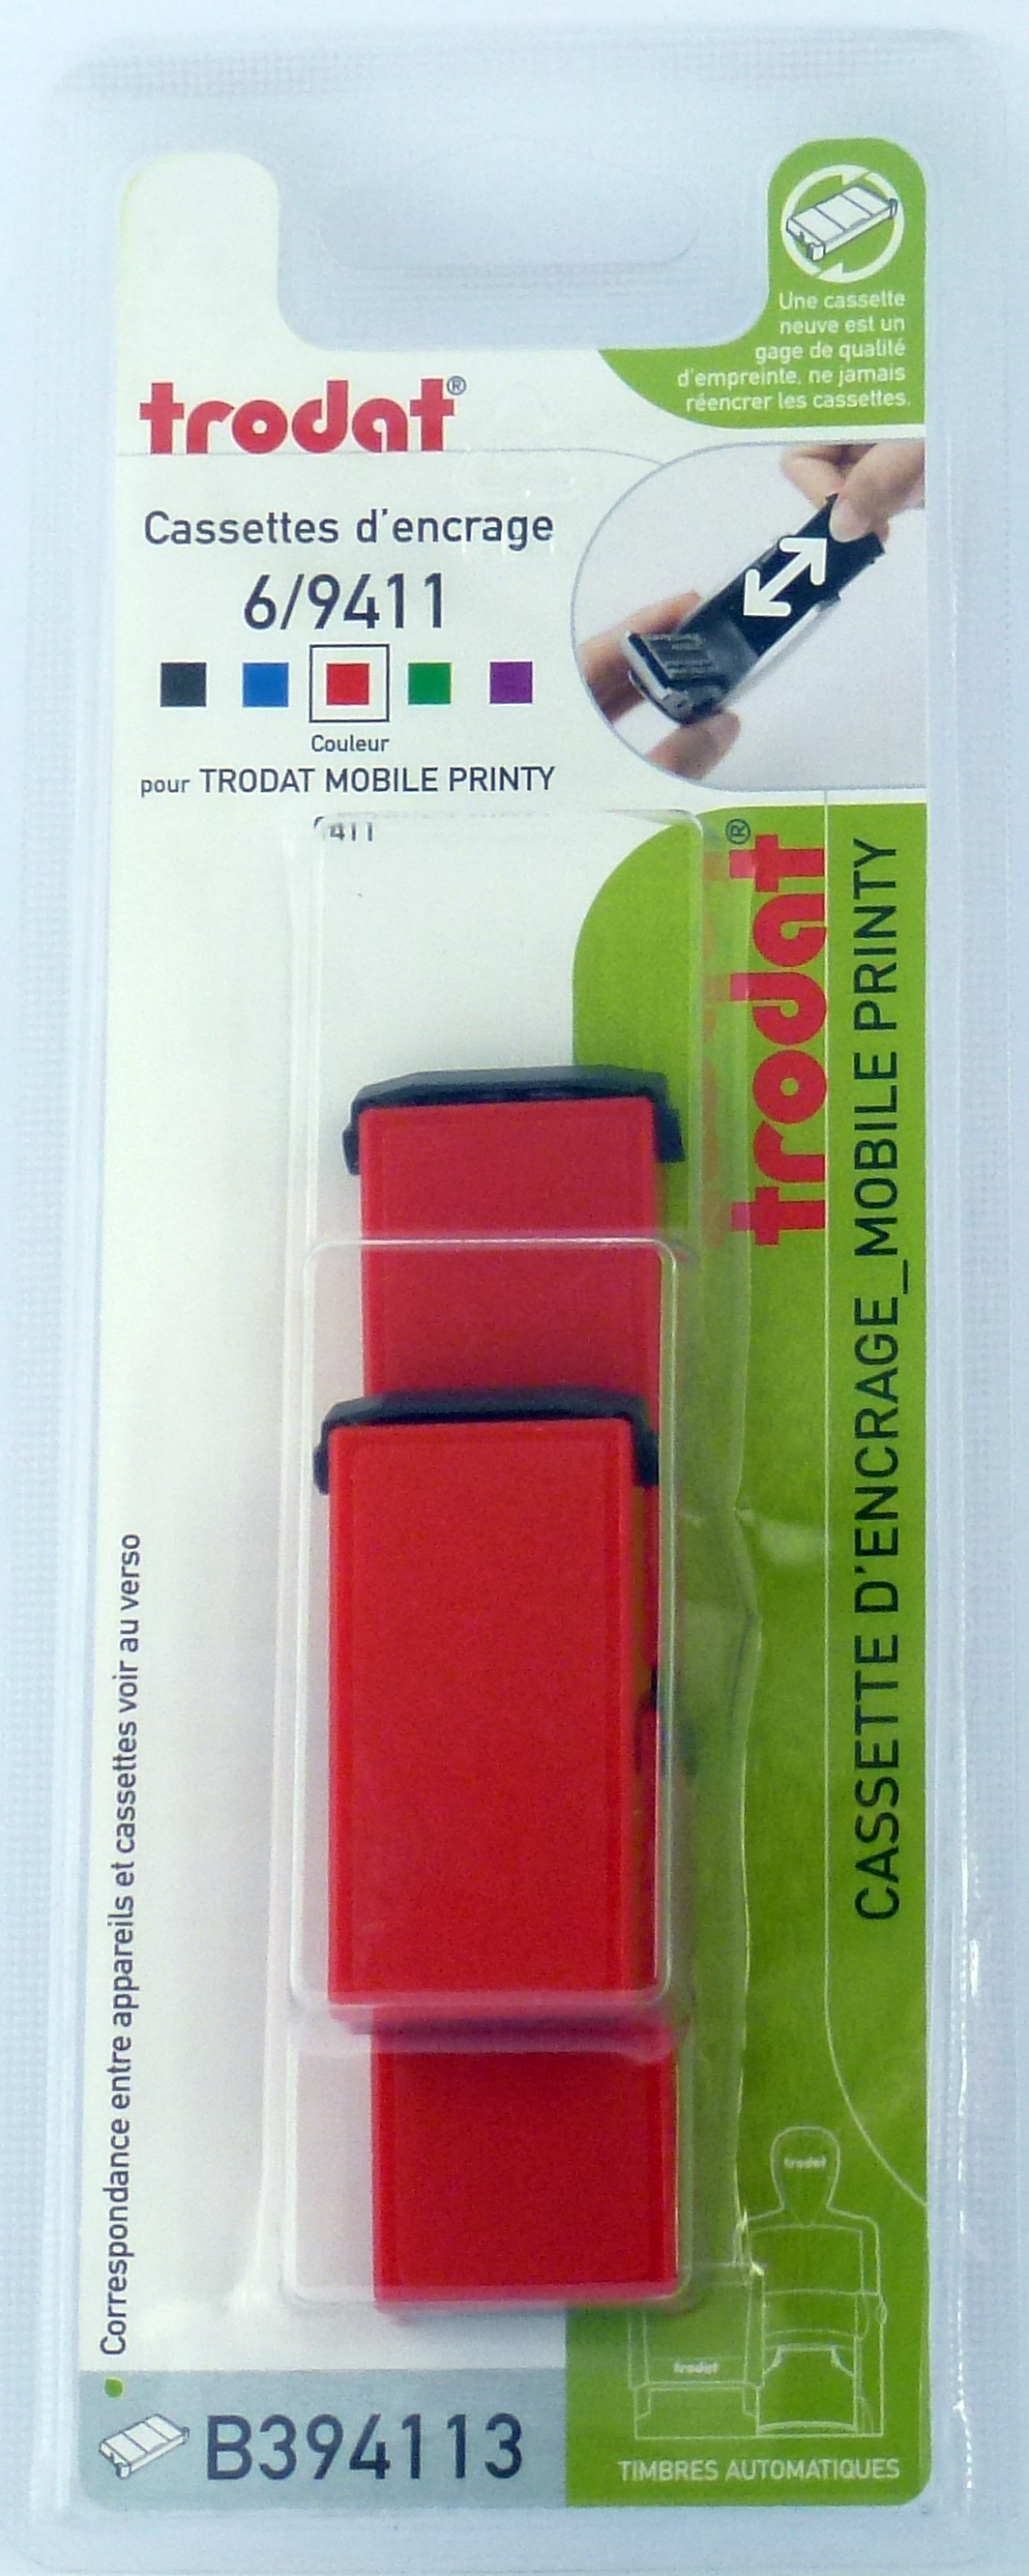 Trodat - 3 Encriers 6/9411 recharges pour tampon Mobile Printy 9411 - rouge